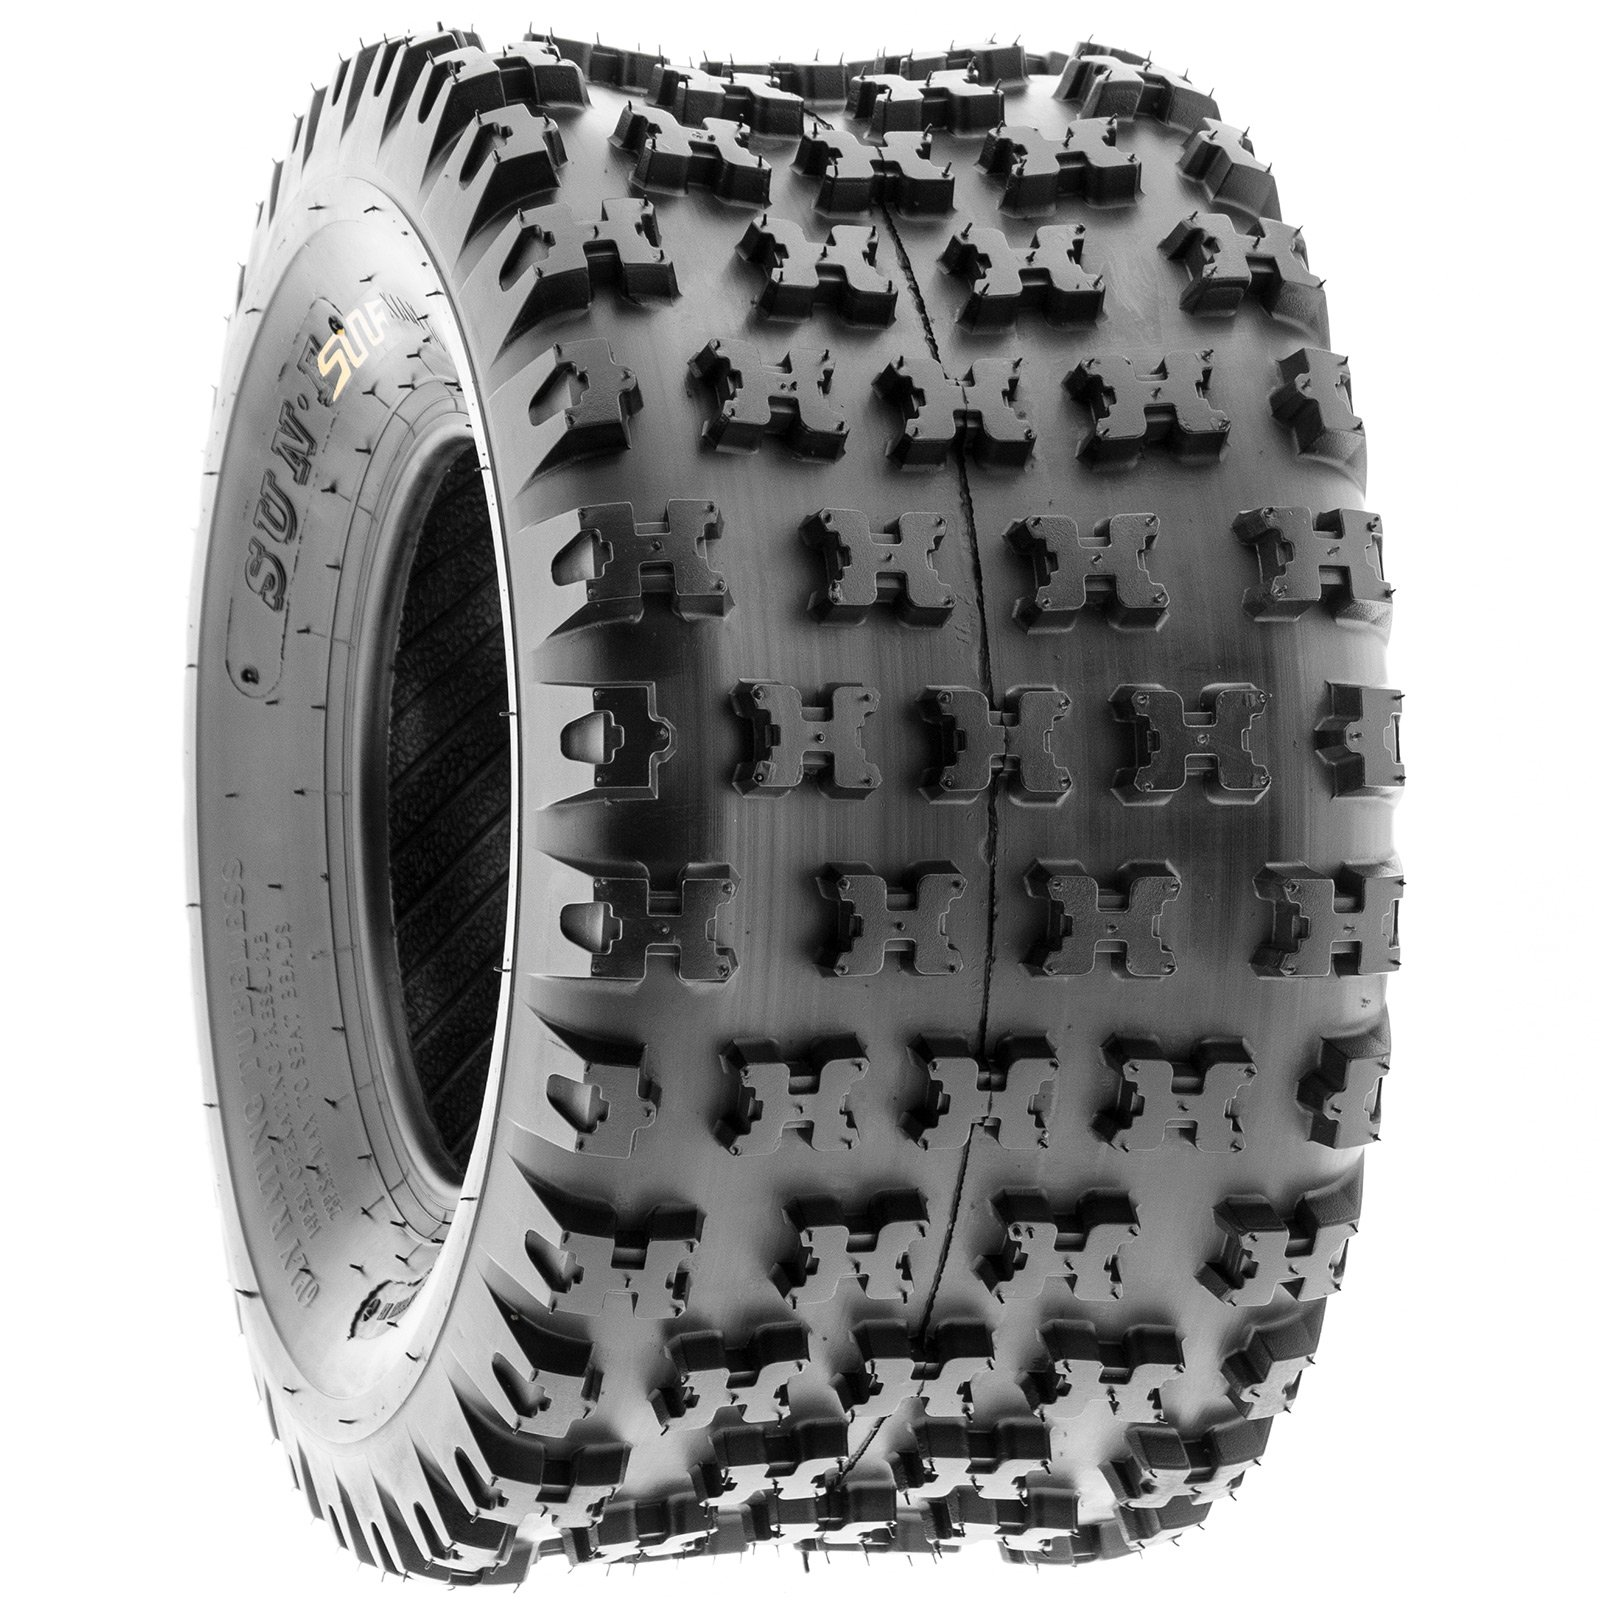 SunF Knobby Sport ATV Tires 20x6-10 & 18x10-8 4/6 PR A031 (Complete set of 4) by SunF (Image #9)